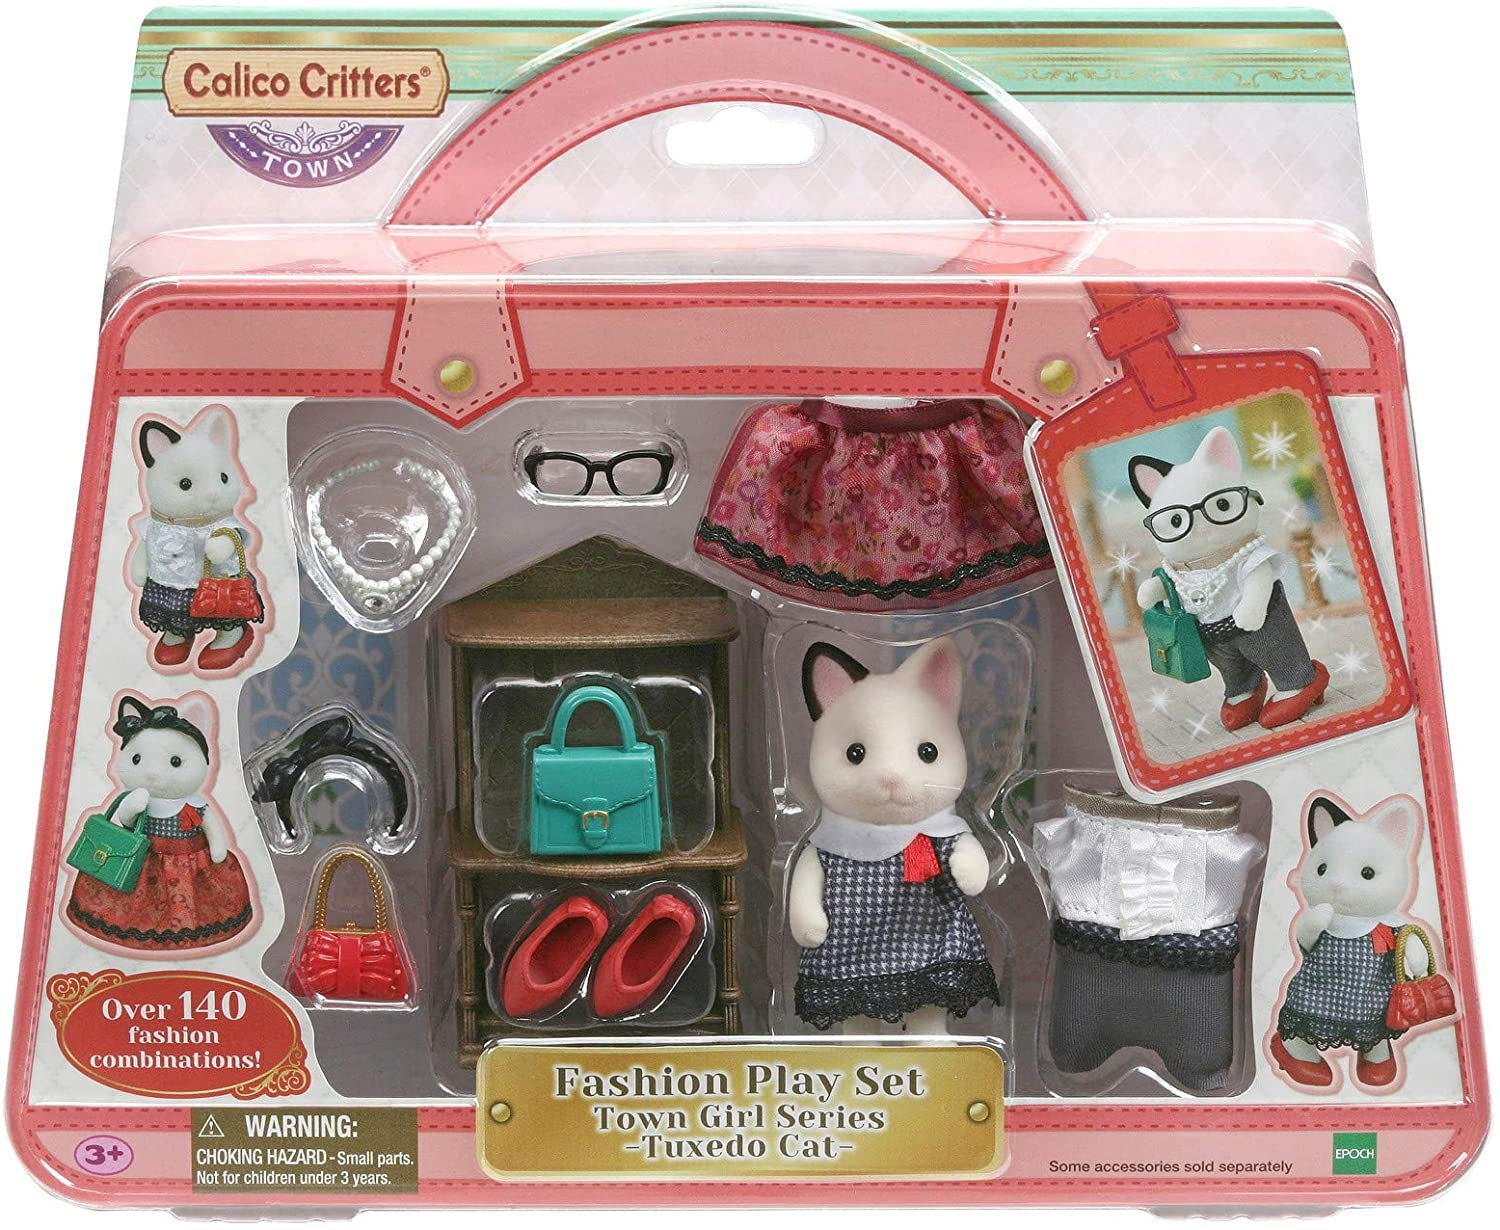 Calico Critters Fashion Playset Tuxedo Cat, Dollhouse Playset with Figure and Fashion Accessories